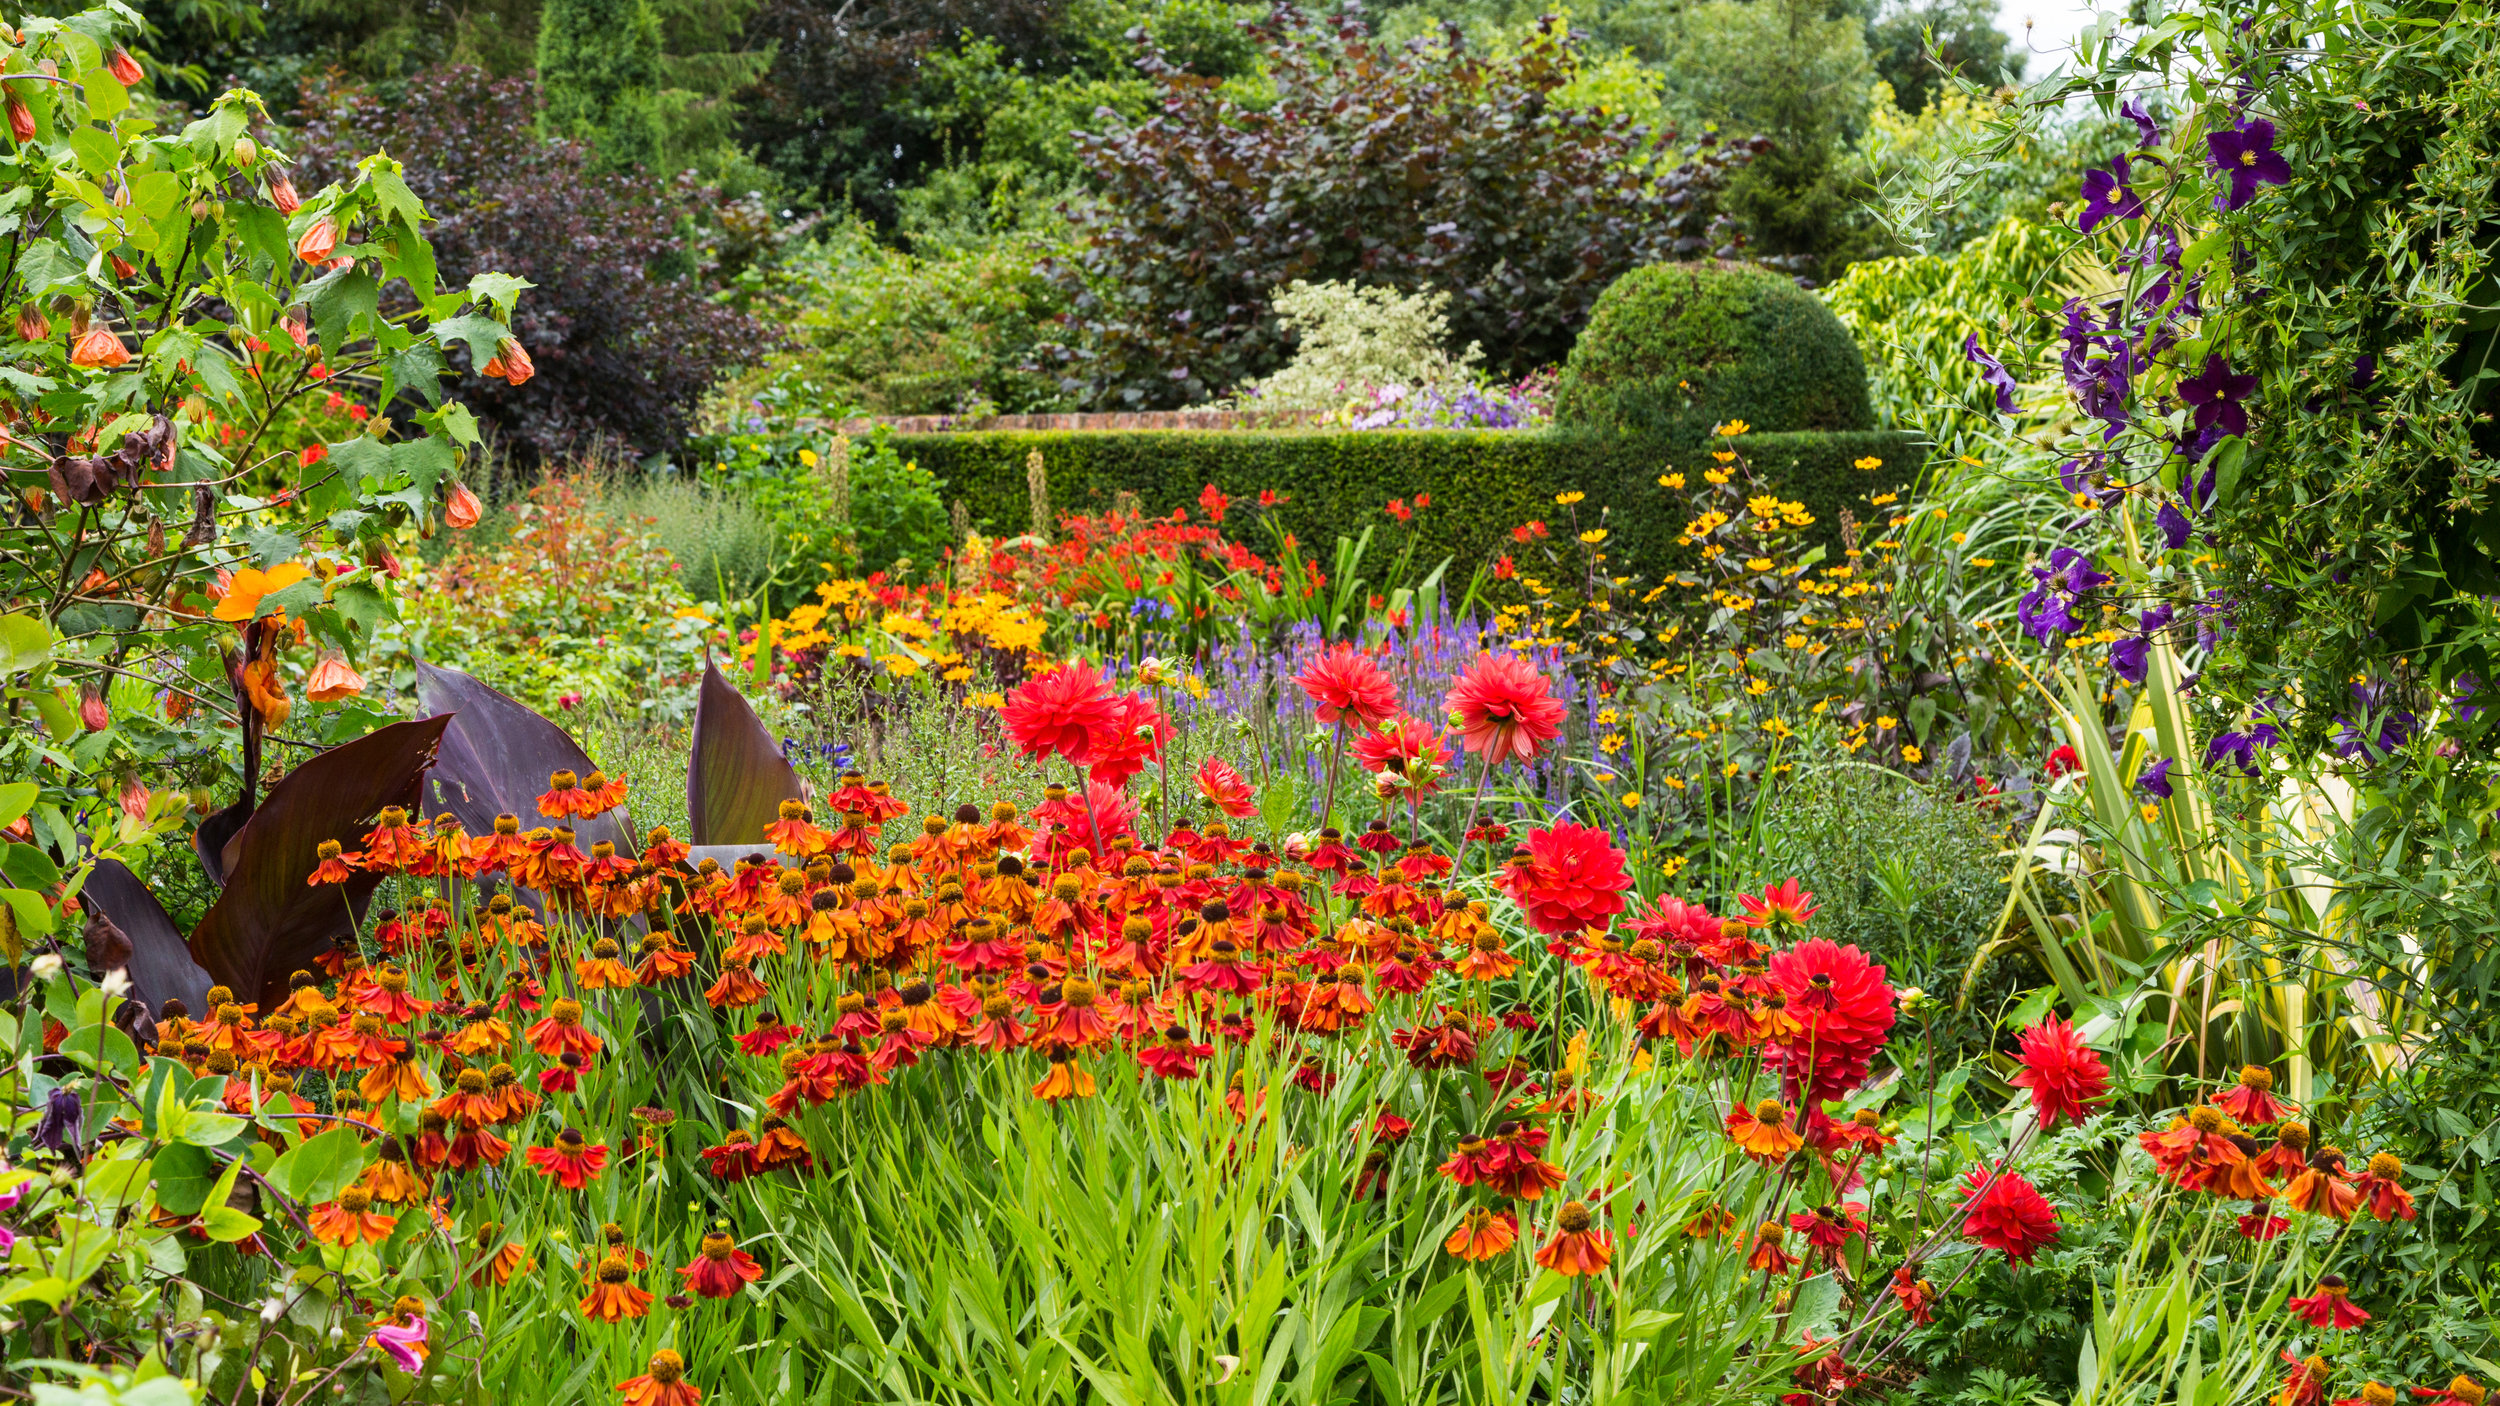 The Hot Borders of Wollerton Old Hall's Lanhydrock Garden. Image: Chris Denning/Verve Garden Design.